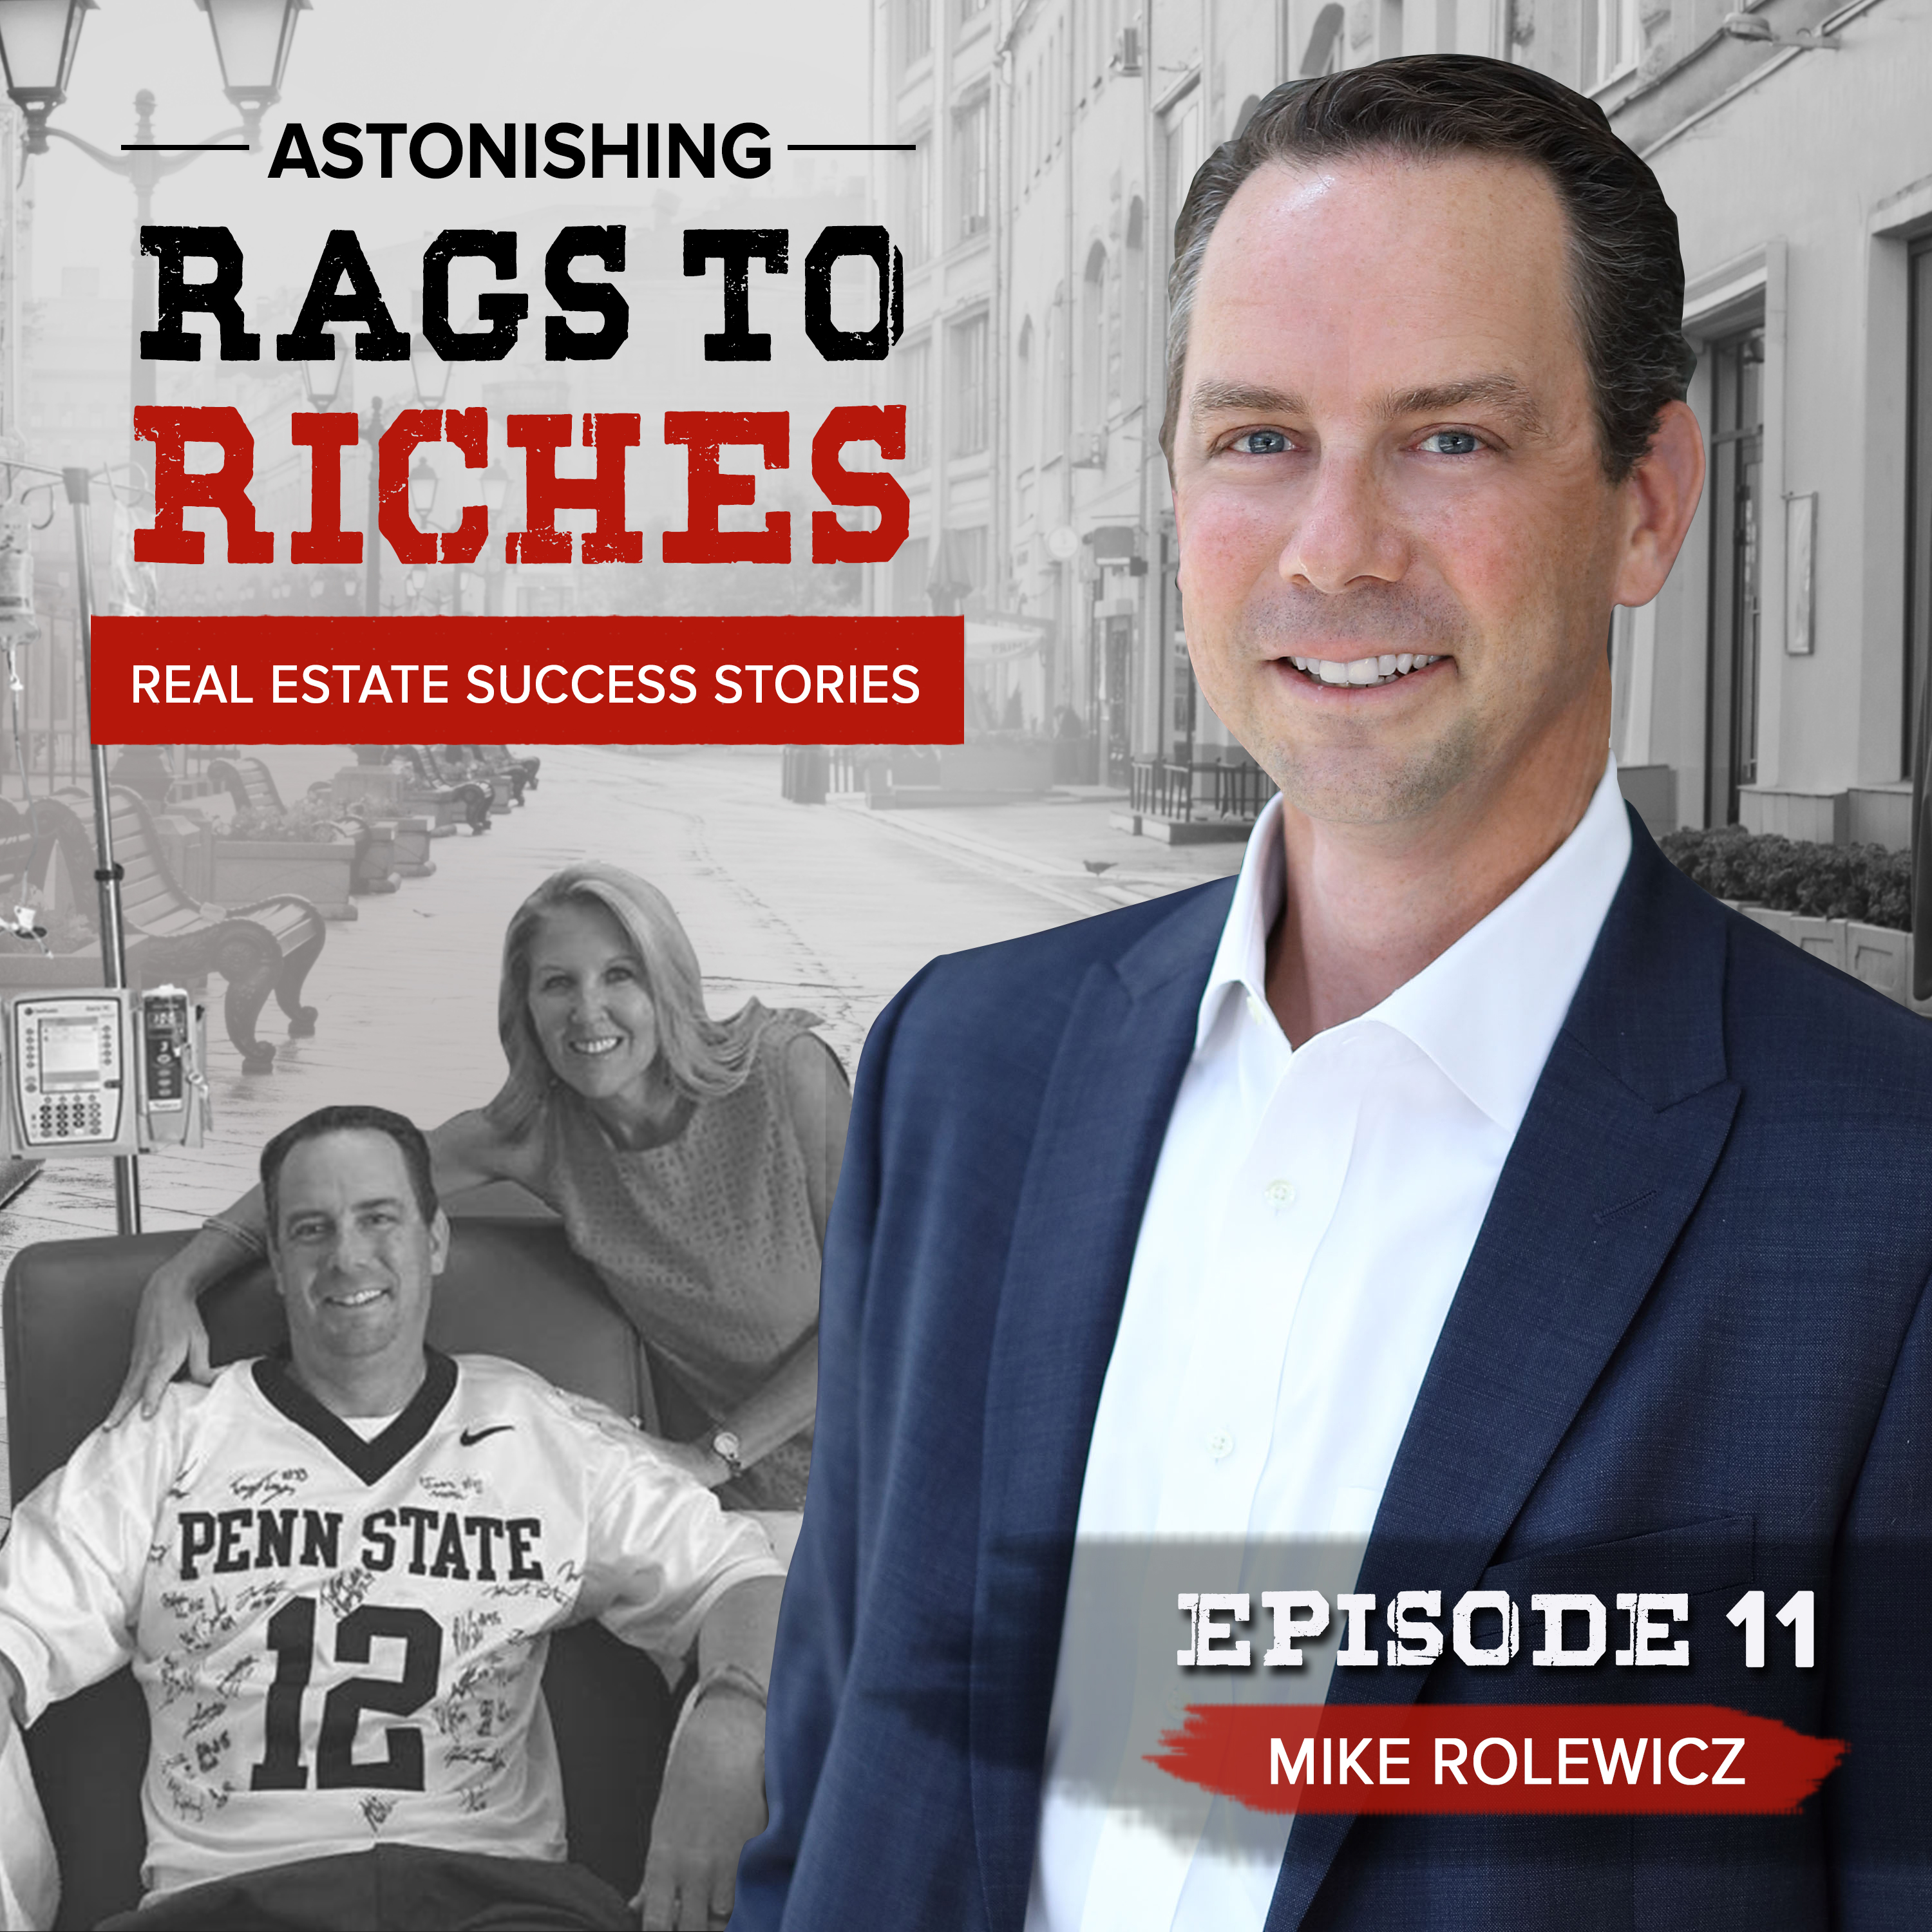 #11 - Mike Rolewicz - Cancer survivor sells his company and makes over 320k year 1 selling real estate.